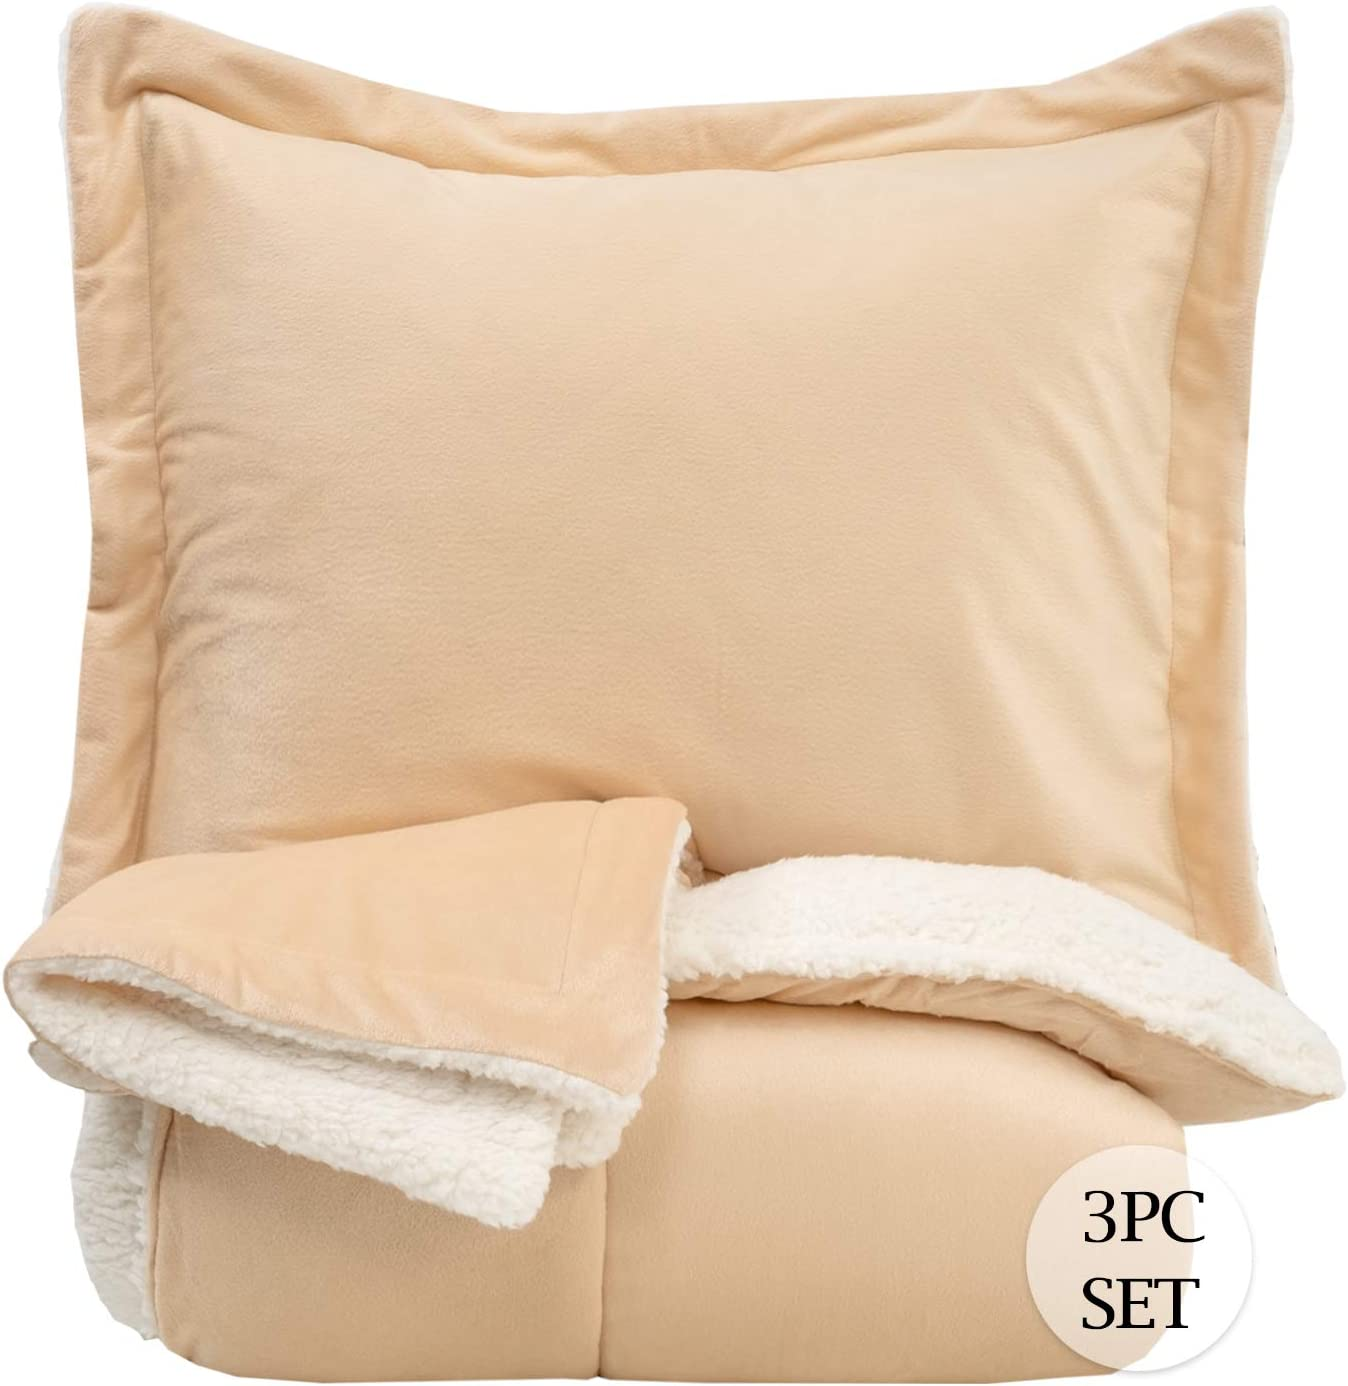 Sweet Home Collection Comforter Set 3 Piece Sherpa Soft and Luxurious Plush All Season Warmth Down Alternative Reversible to Solid Color with 2 Shams, King, Cream